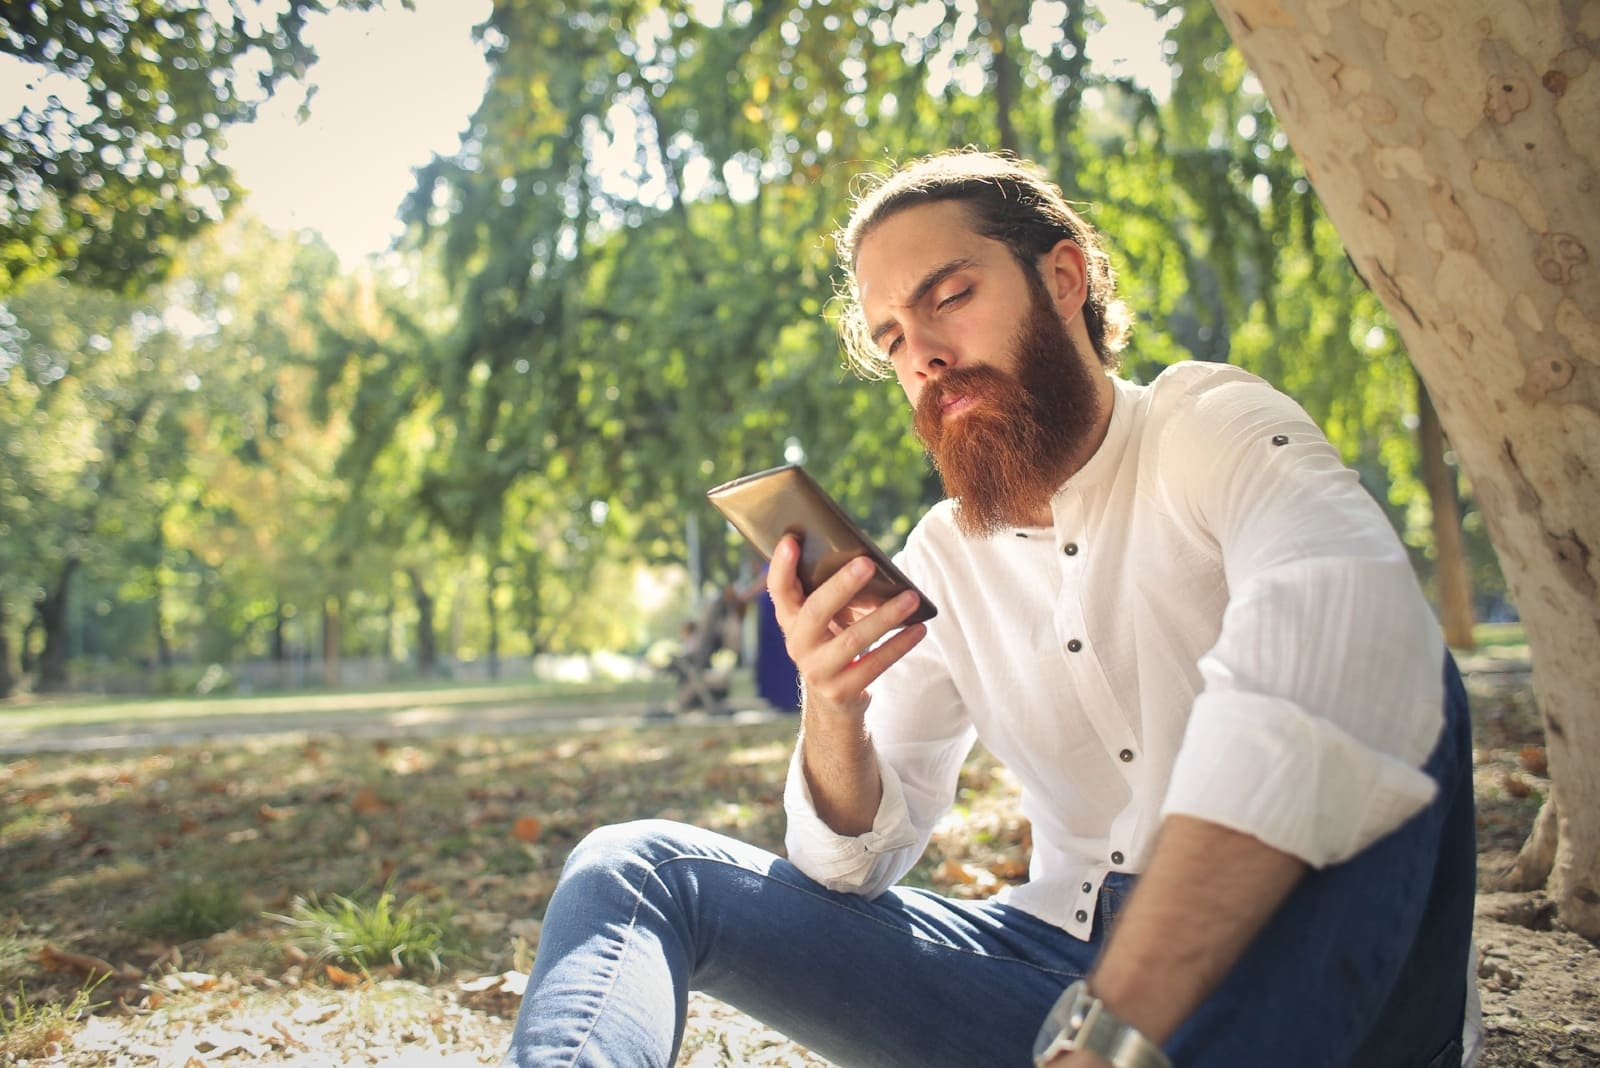 man with beard looking at phone while sitting near tree